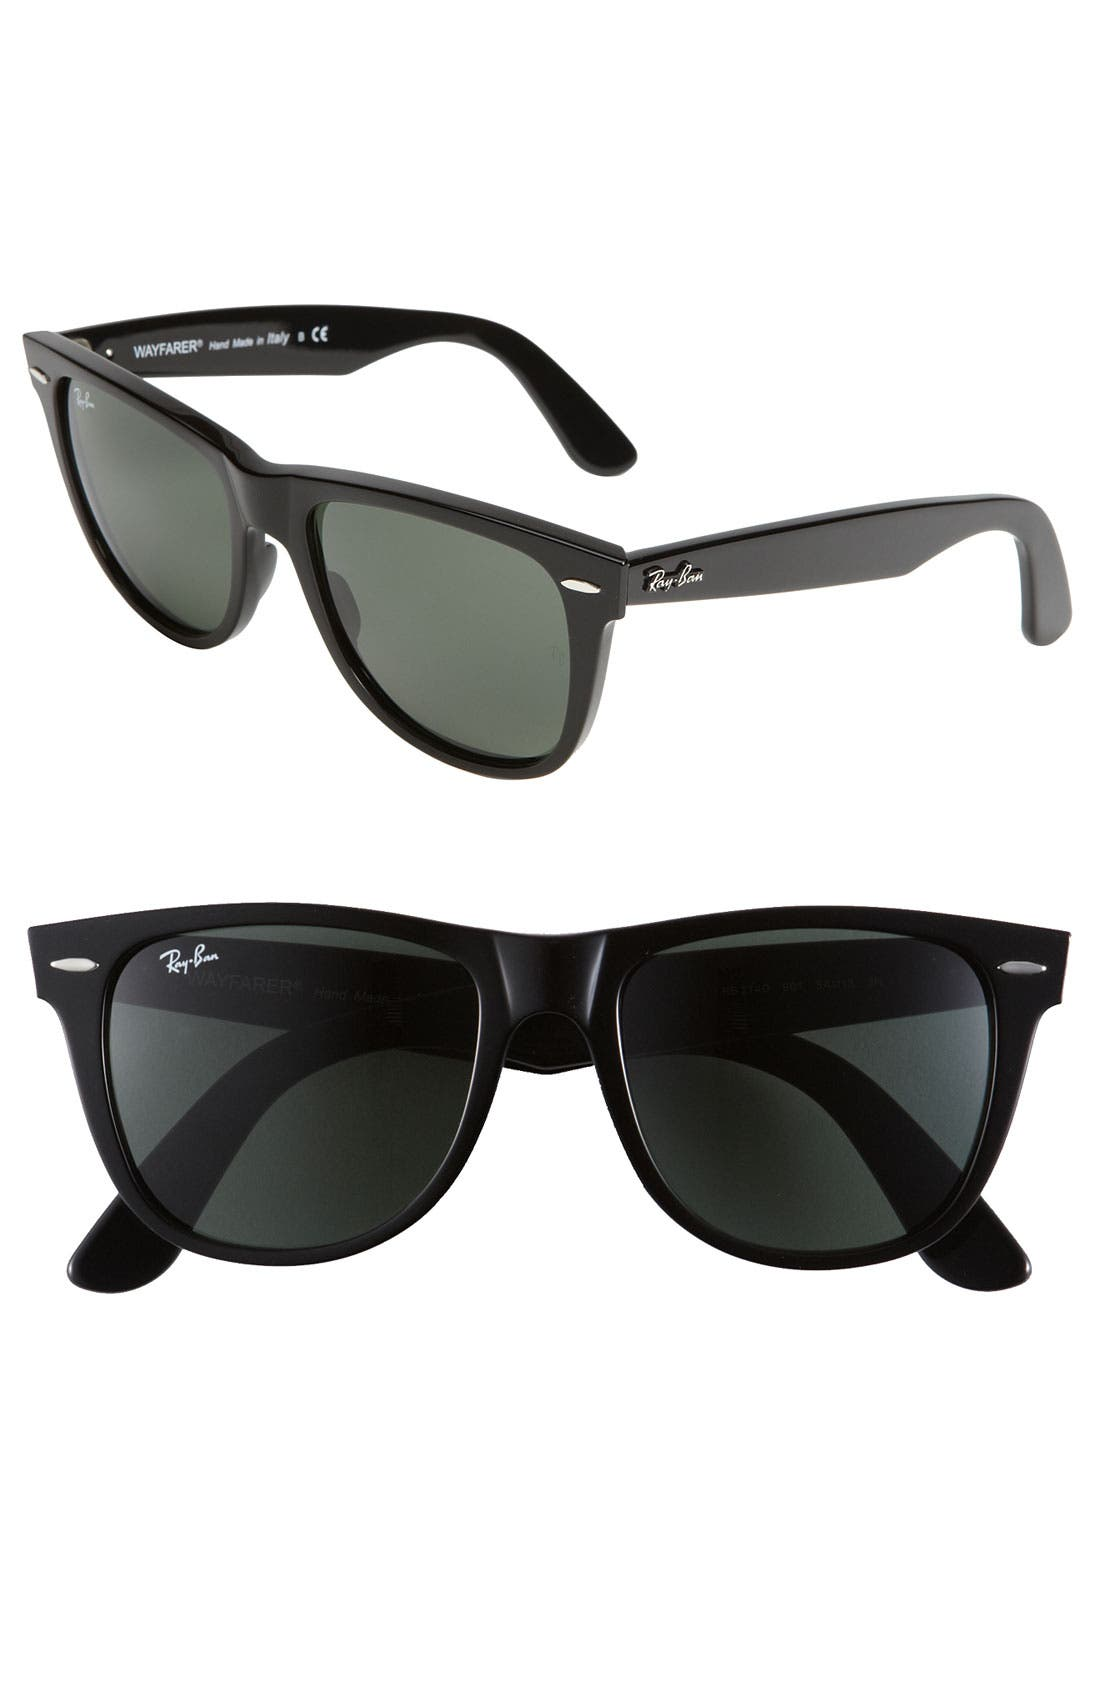 Large Classic Wayfarer 54mm Sunglasses,                             Main thumbnail 1, color,                             001